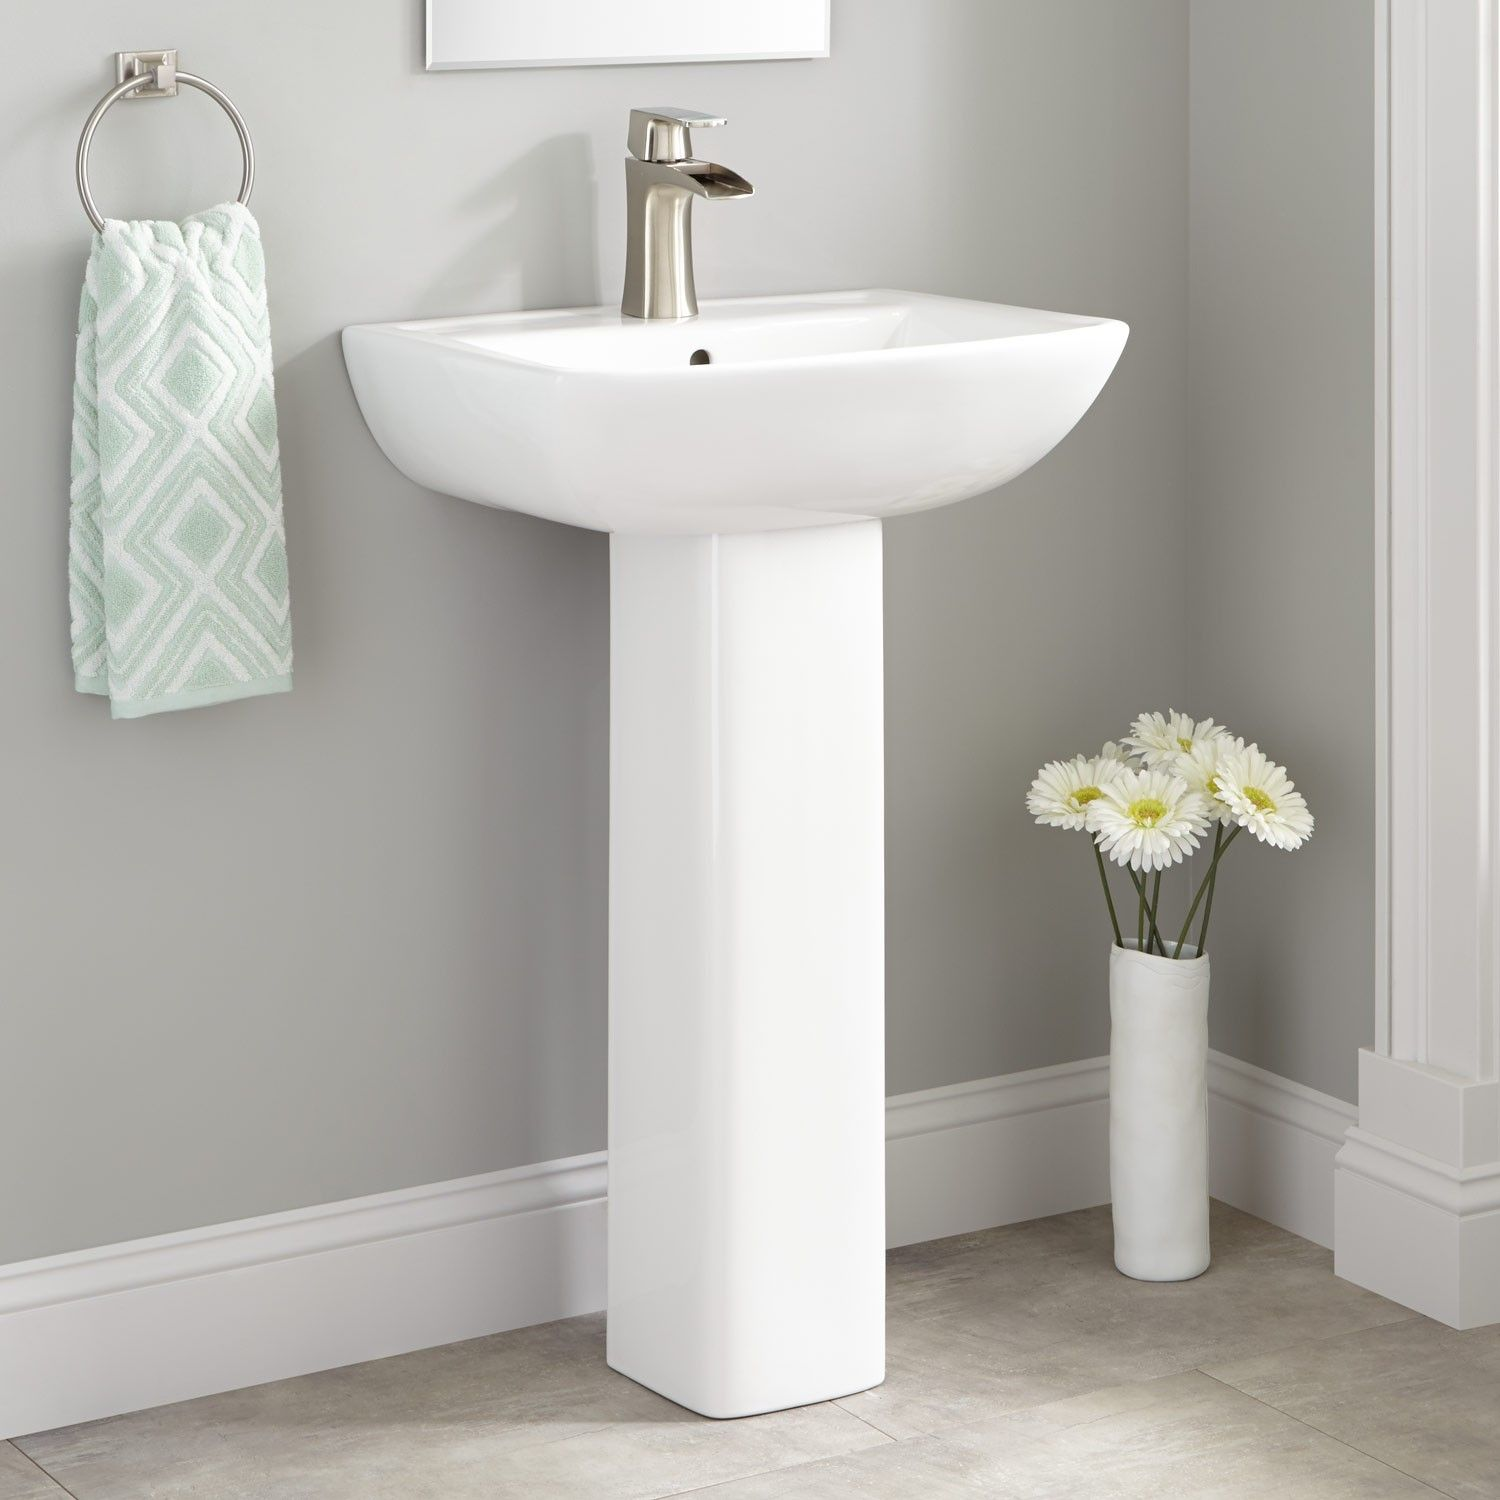 Kerr Porcelain Pedestal Sink  Pedestal Sink Sinks And Porcelain Endearing Bathroom Sinks Small Review